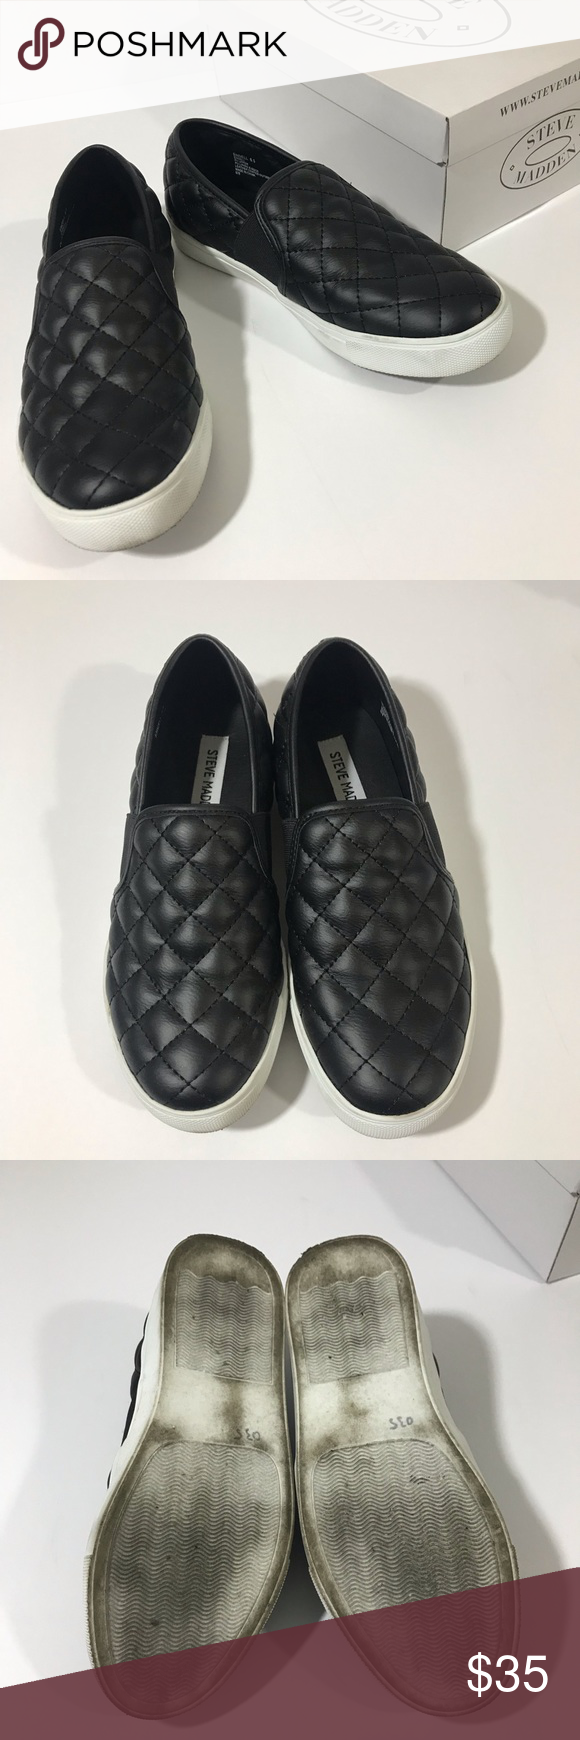 a2bf254db14 Steve Madden Endell Black Slip Ons Size 6.5 From my personal closet  worn  once and